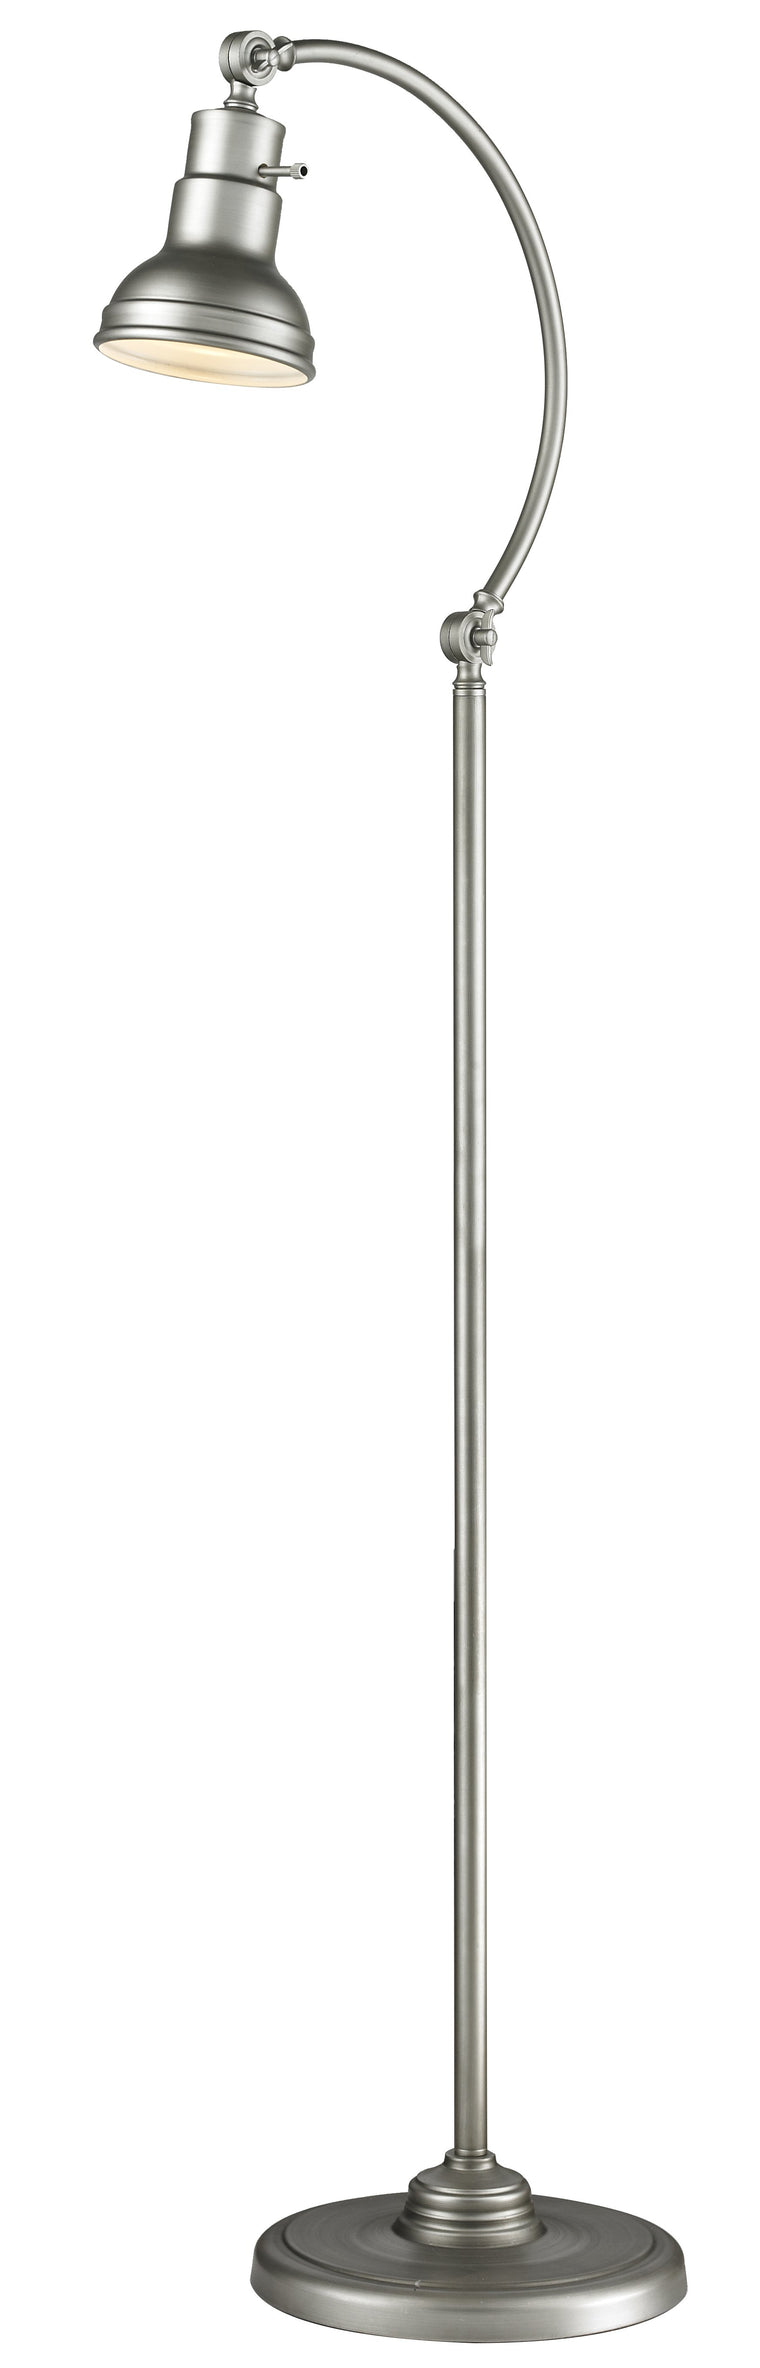 Ramsay Brushed Silver Floor Lamp by Z-Lite FL119-BS